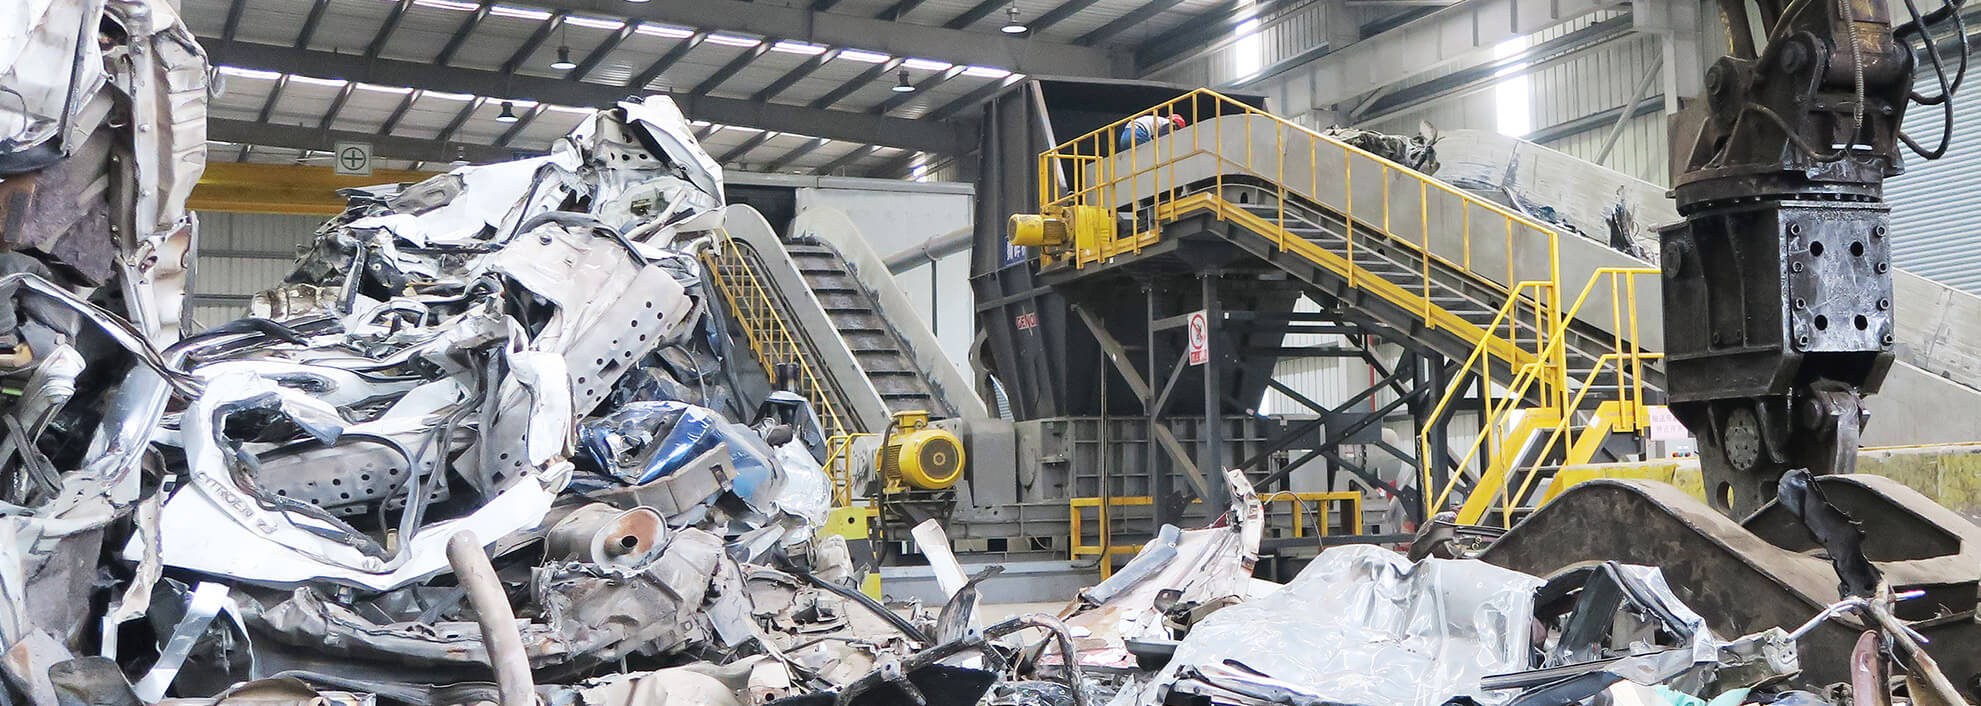 Car Body Shell & Light Metal Scrap Recycling System